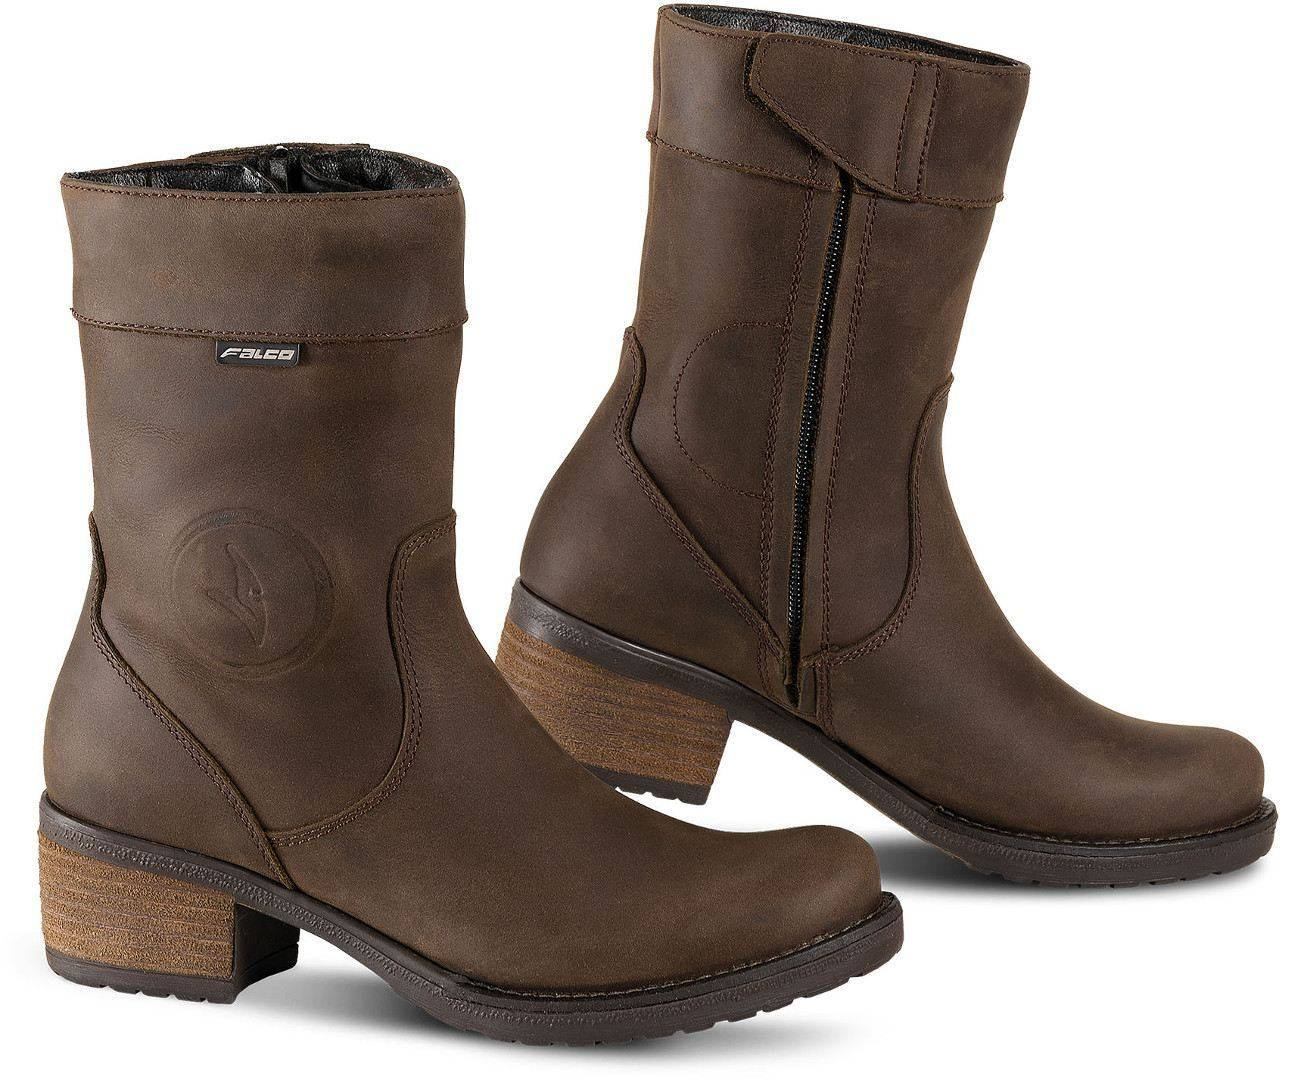 Falco Ayda 2 Ladies Motorcycle Boots  - Size: 39